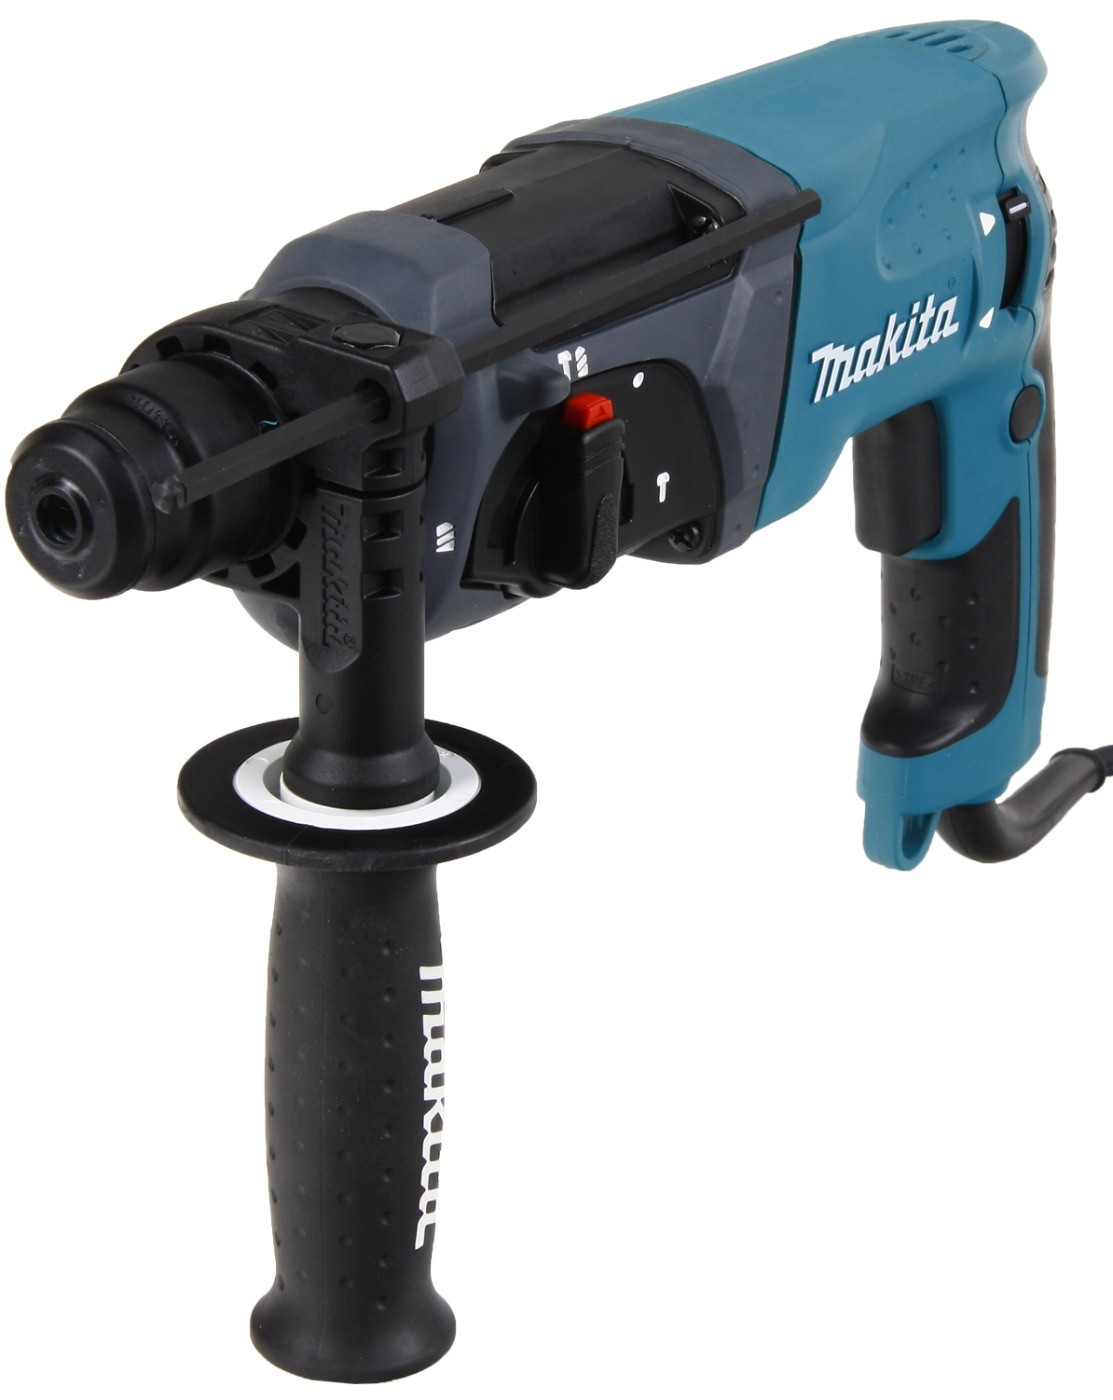 SDS-Plus  перфоратор sds plus makita hr2470